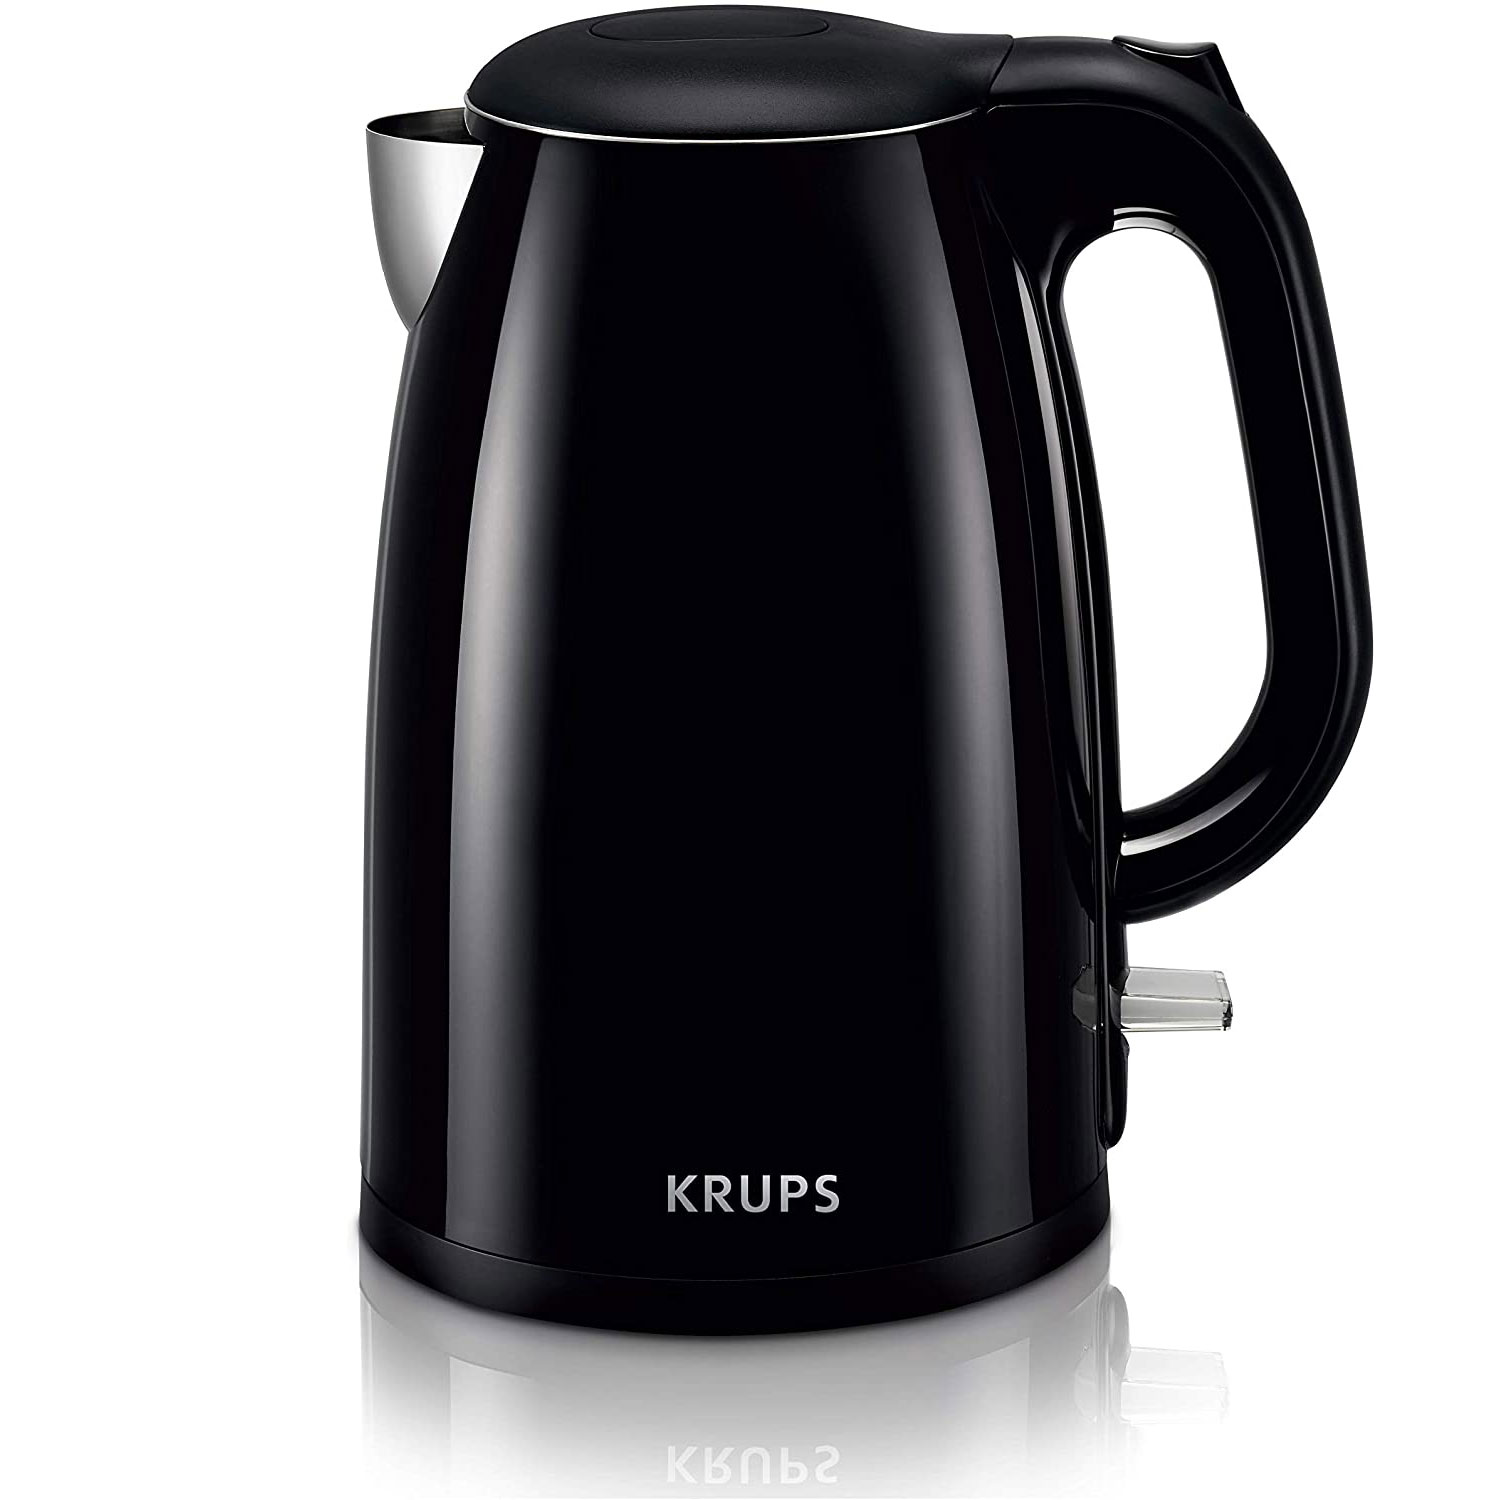 krups cool touch stainless steel double wall electric kettle